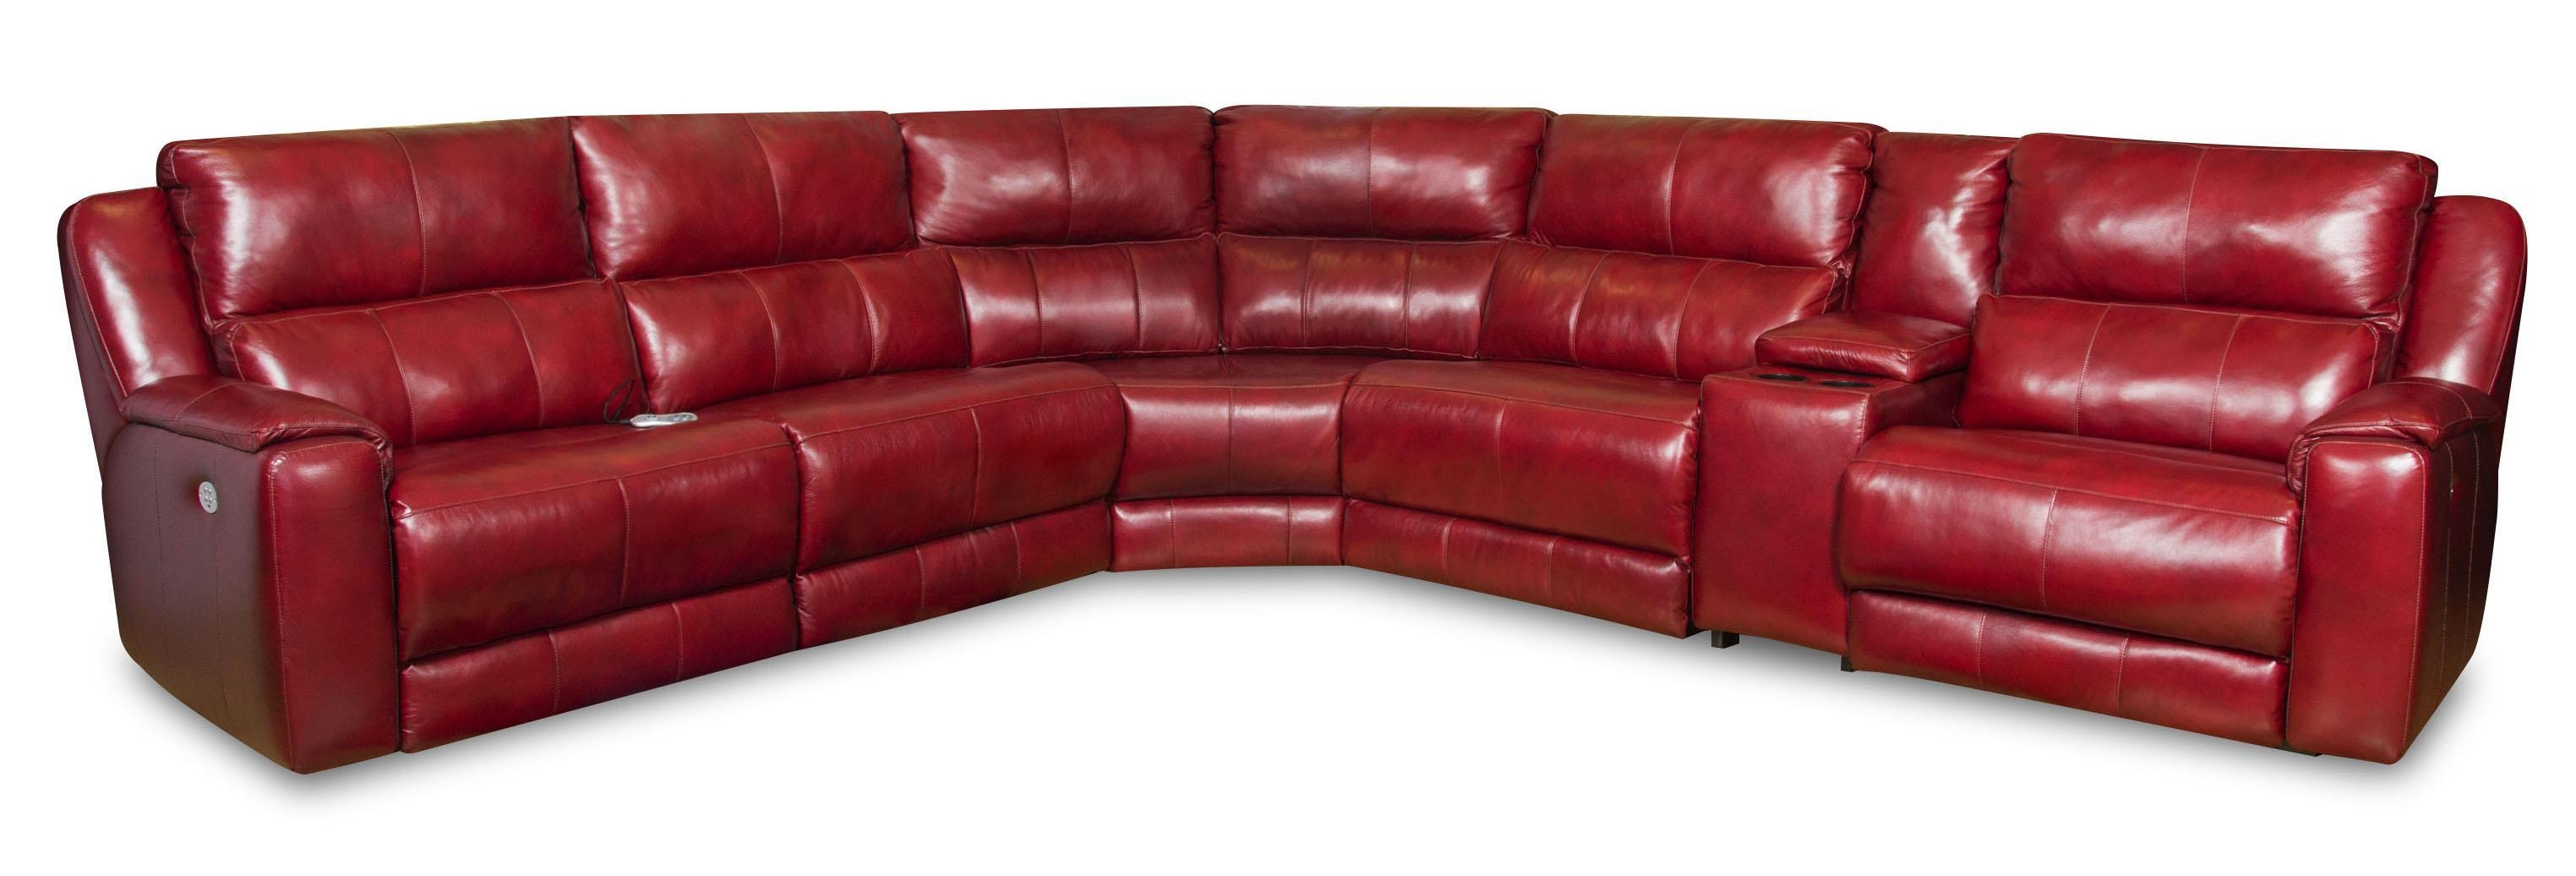 Sectional Sofa With 5 Seats And Cup Holders And Power Headrests Within Sofas With Cup Holders (Image 11 of 20)